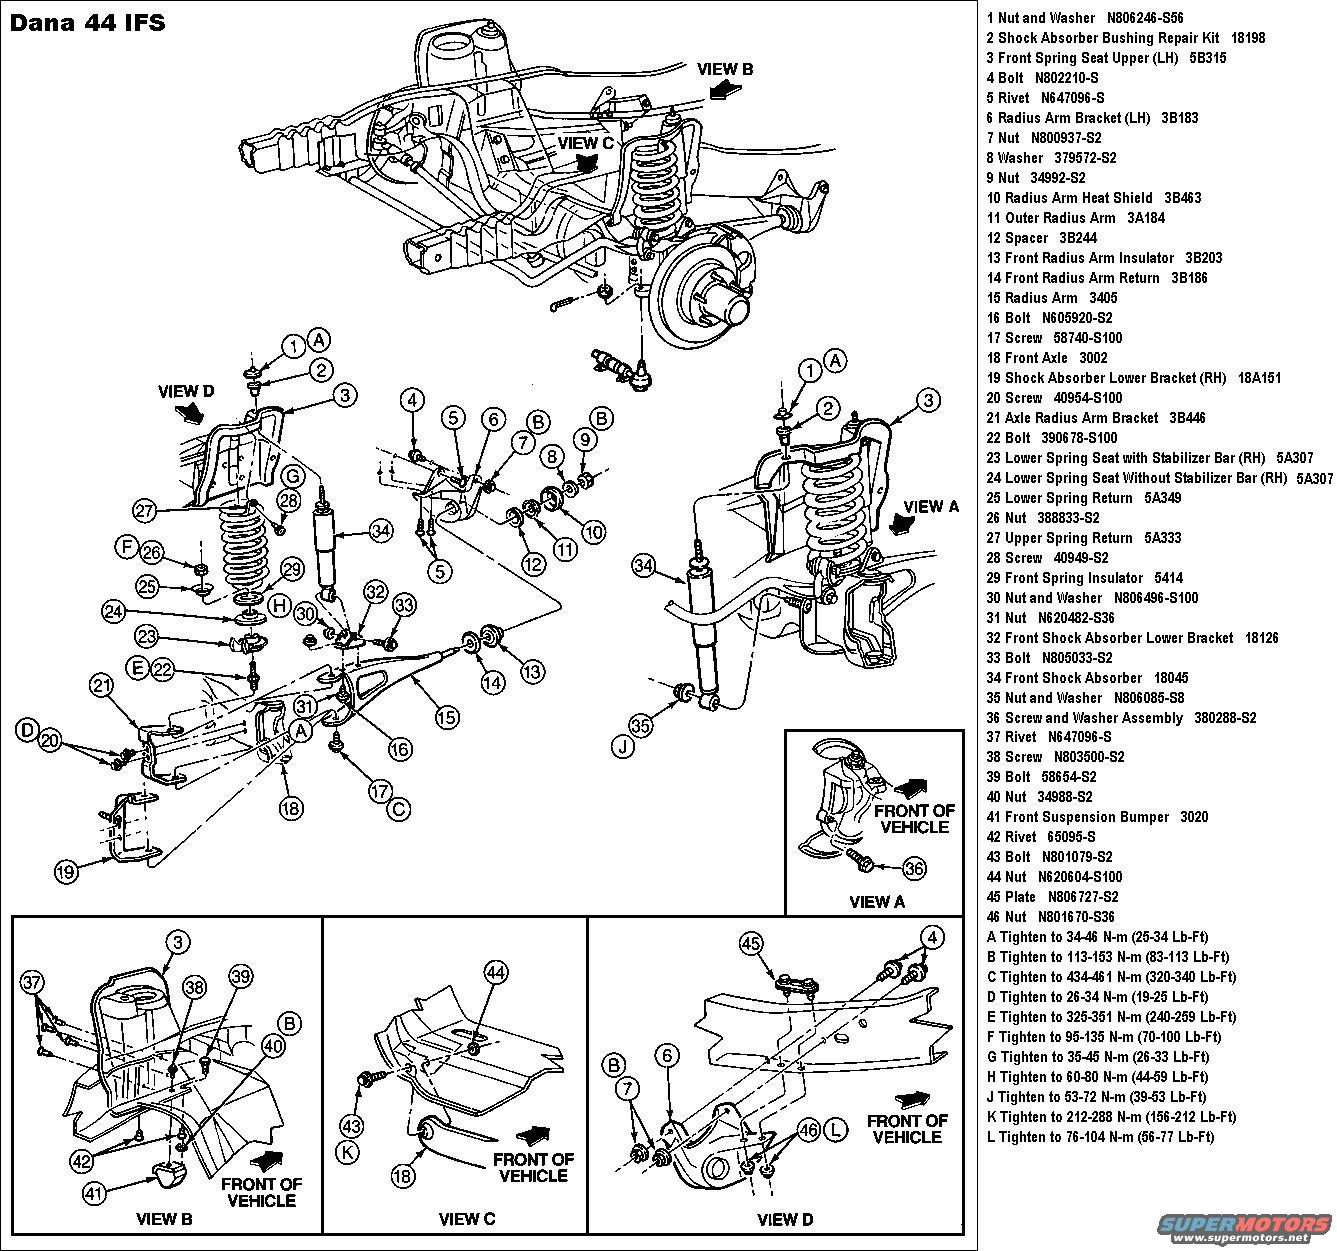 2003 ford f150 front end parts diagram periodic. Black Bedroom Furniture Sets. Home Design Ideas